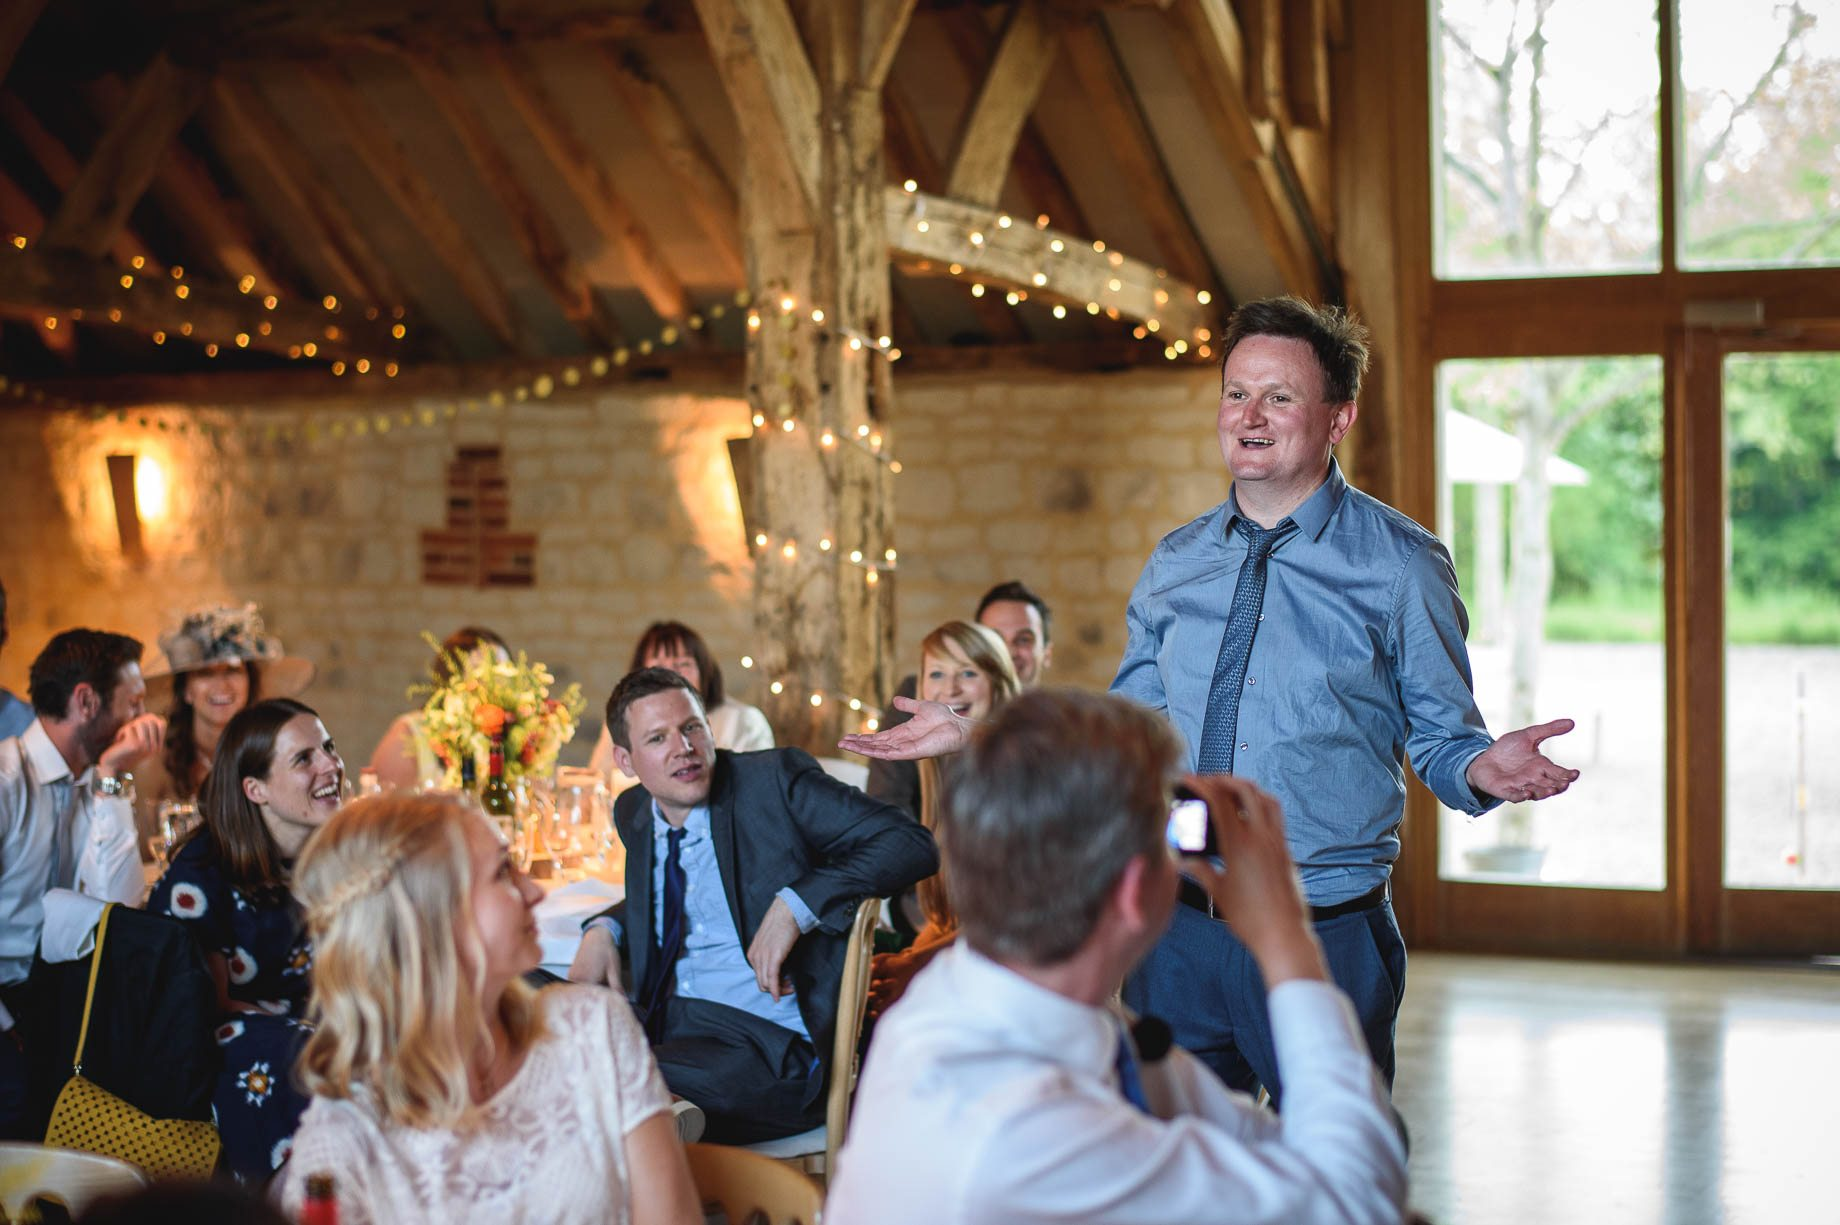 Bury Court Barn wedding photography by Guy Collier - Jo and Jamie (133 of 160)